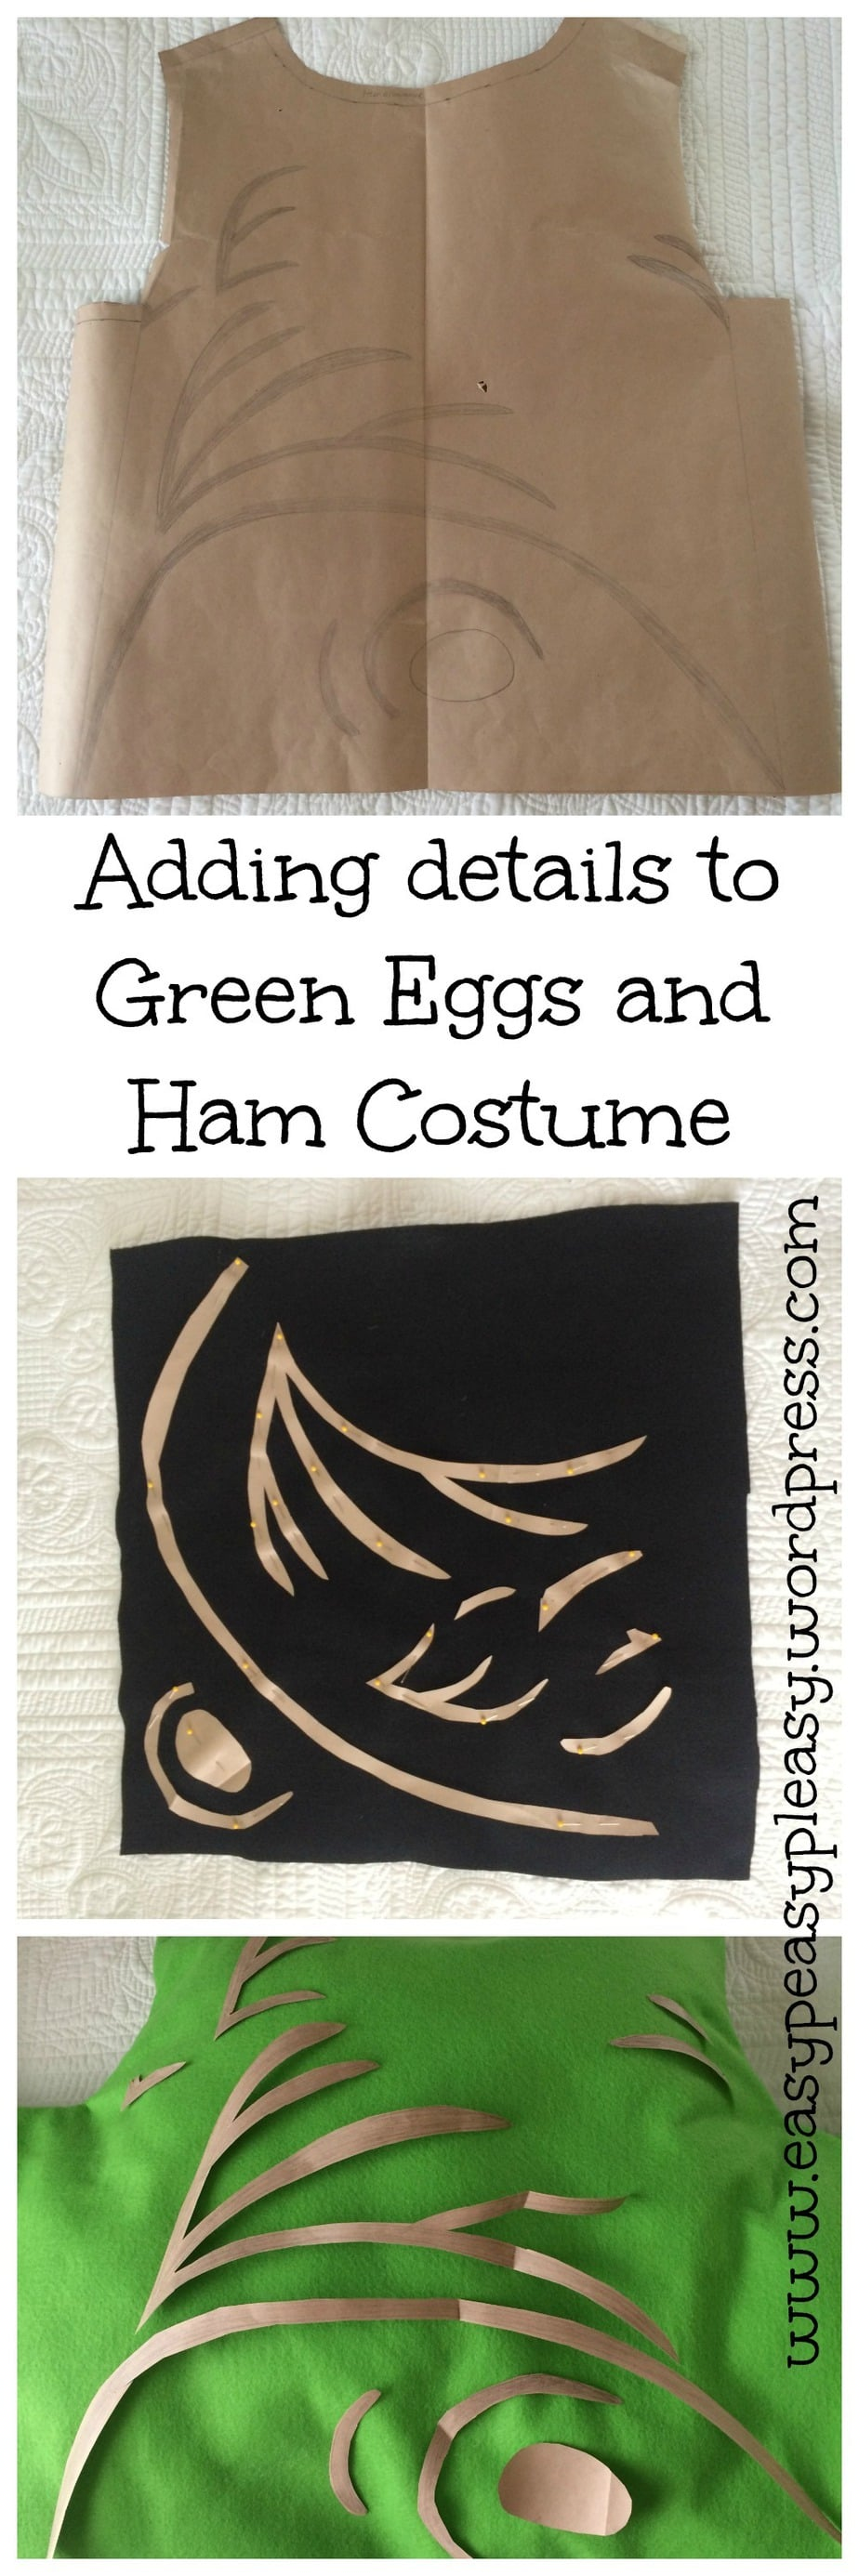 Adding details to Dr. Seuss's Sam I am Green Eggs and Ham Costume. Full directions at https://easypeasypleasy.com